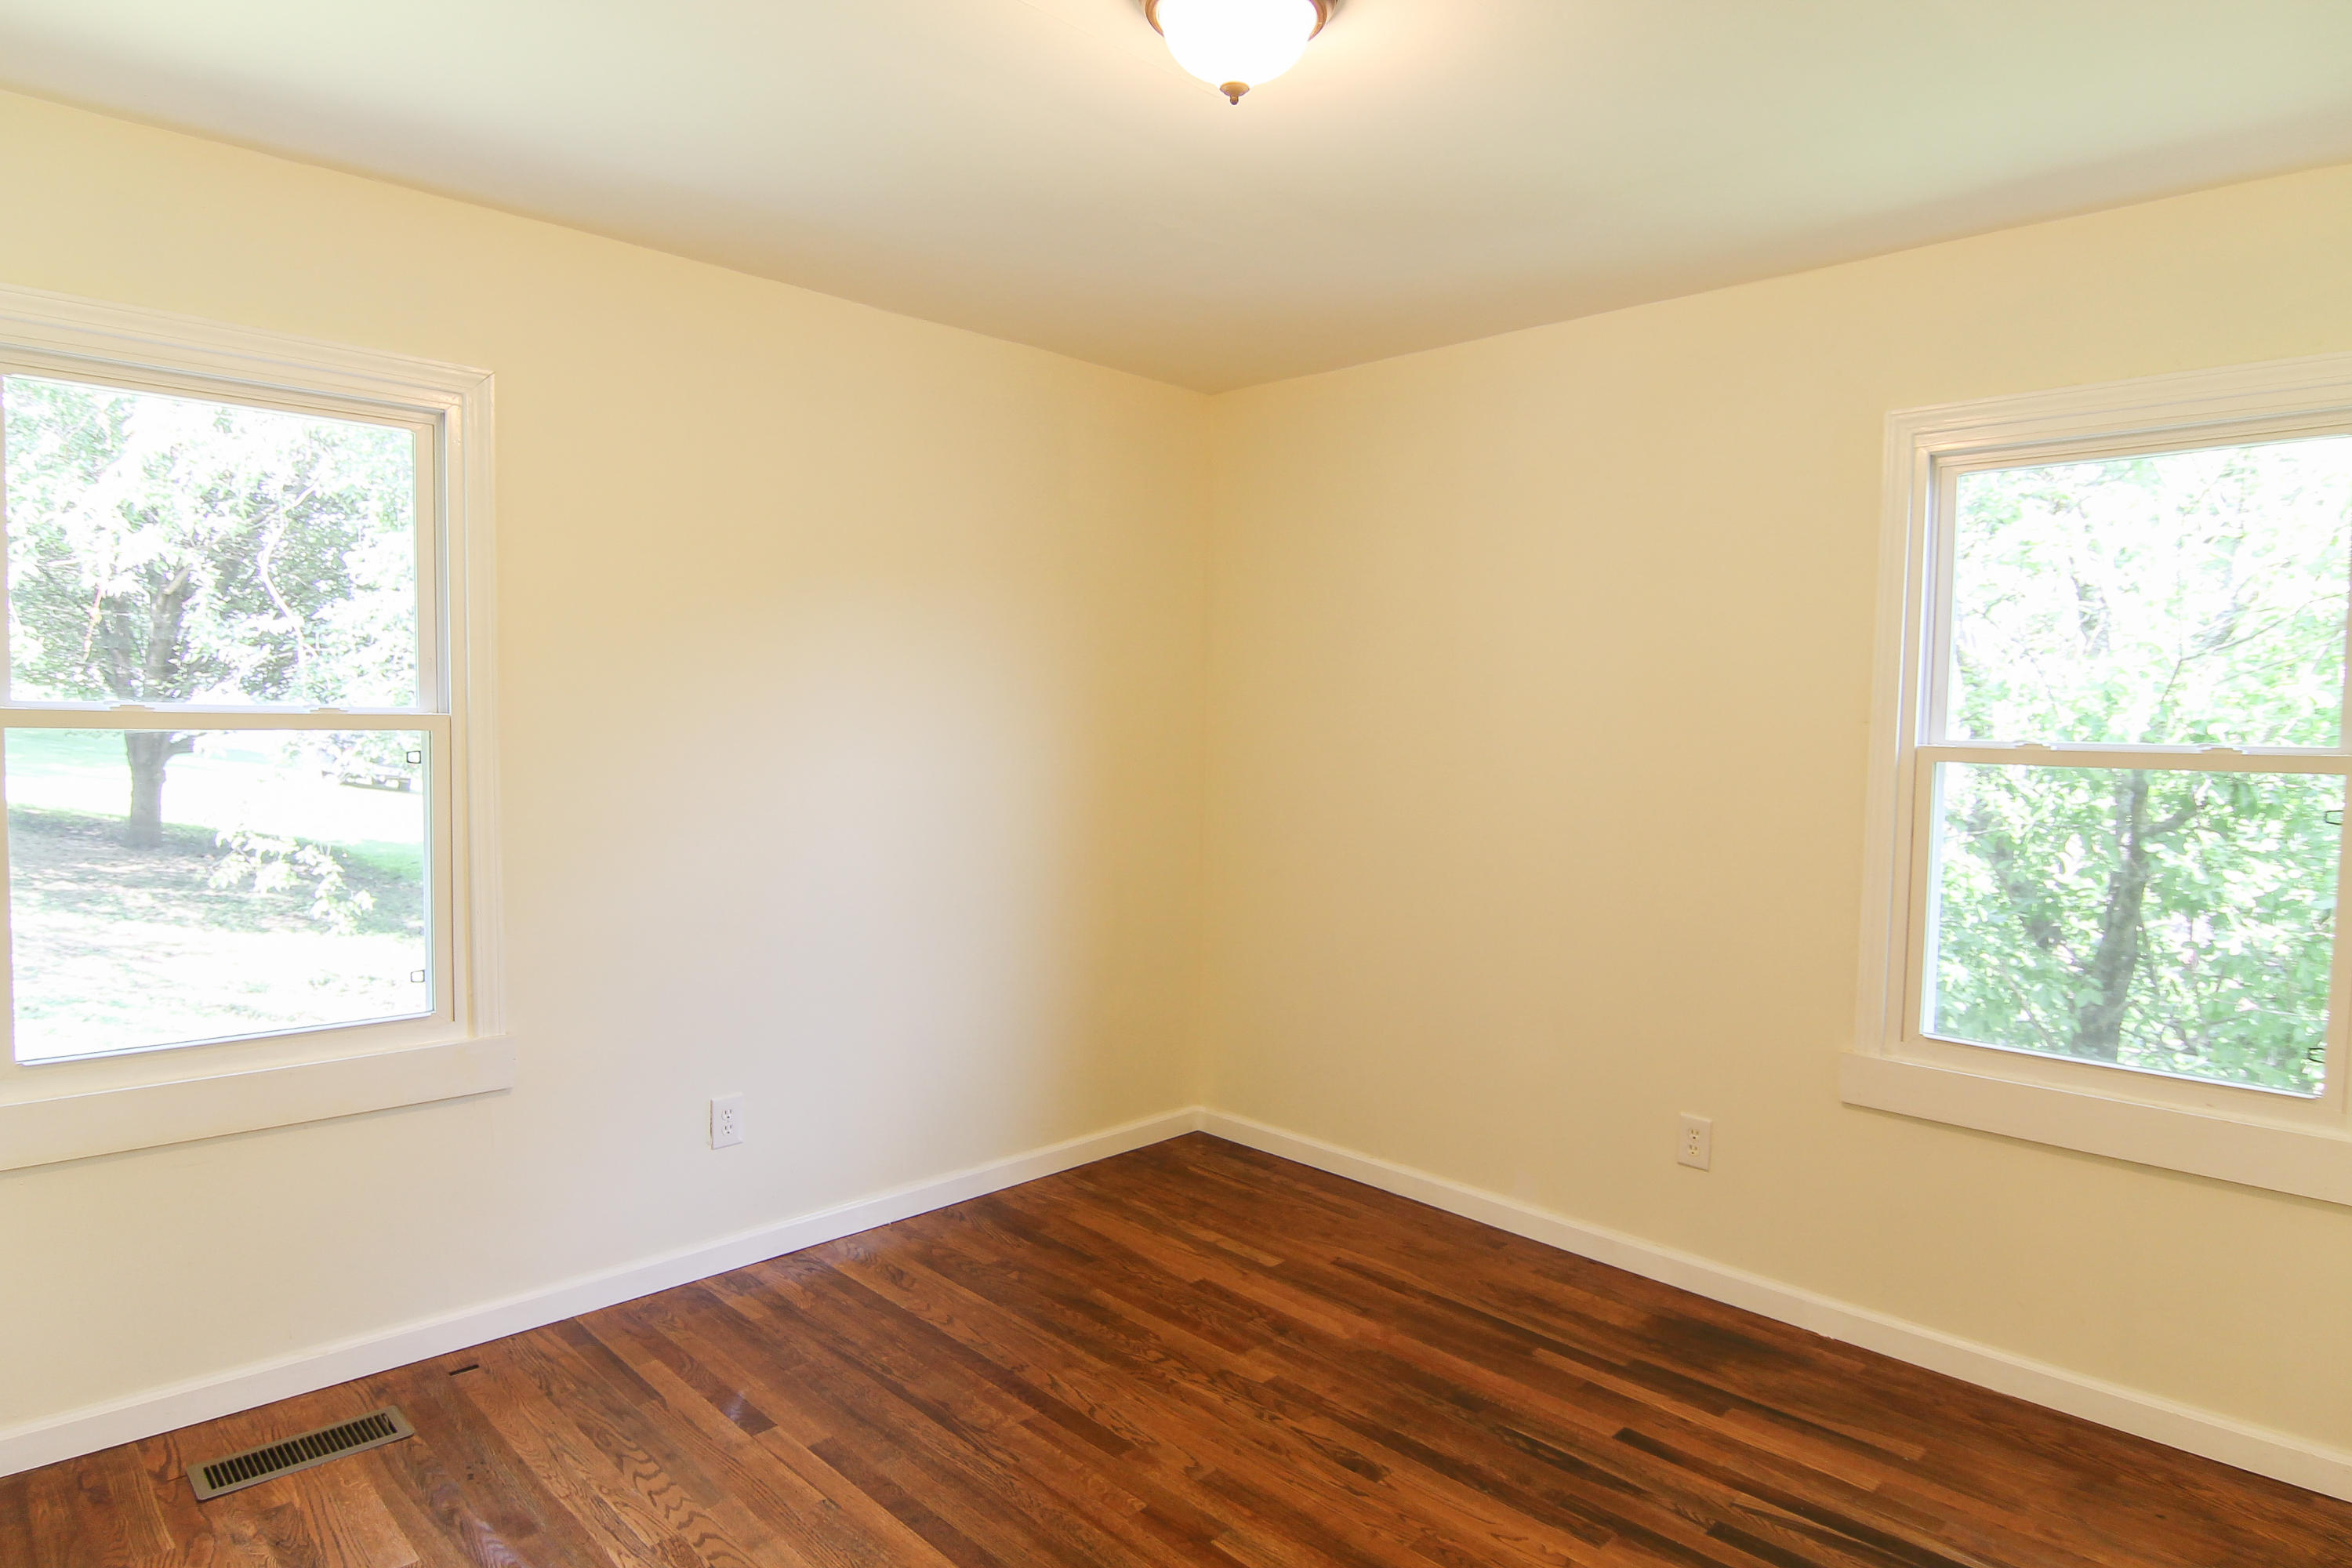 1815 Mcteer St, Knoxville, Tennessee 37921, 2 Bedrooms Bedrooms, ,1 BathroomBathrooms,Single Family,For Sale,Mcteer,1048333